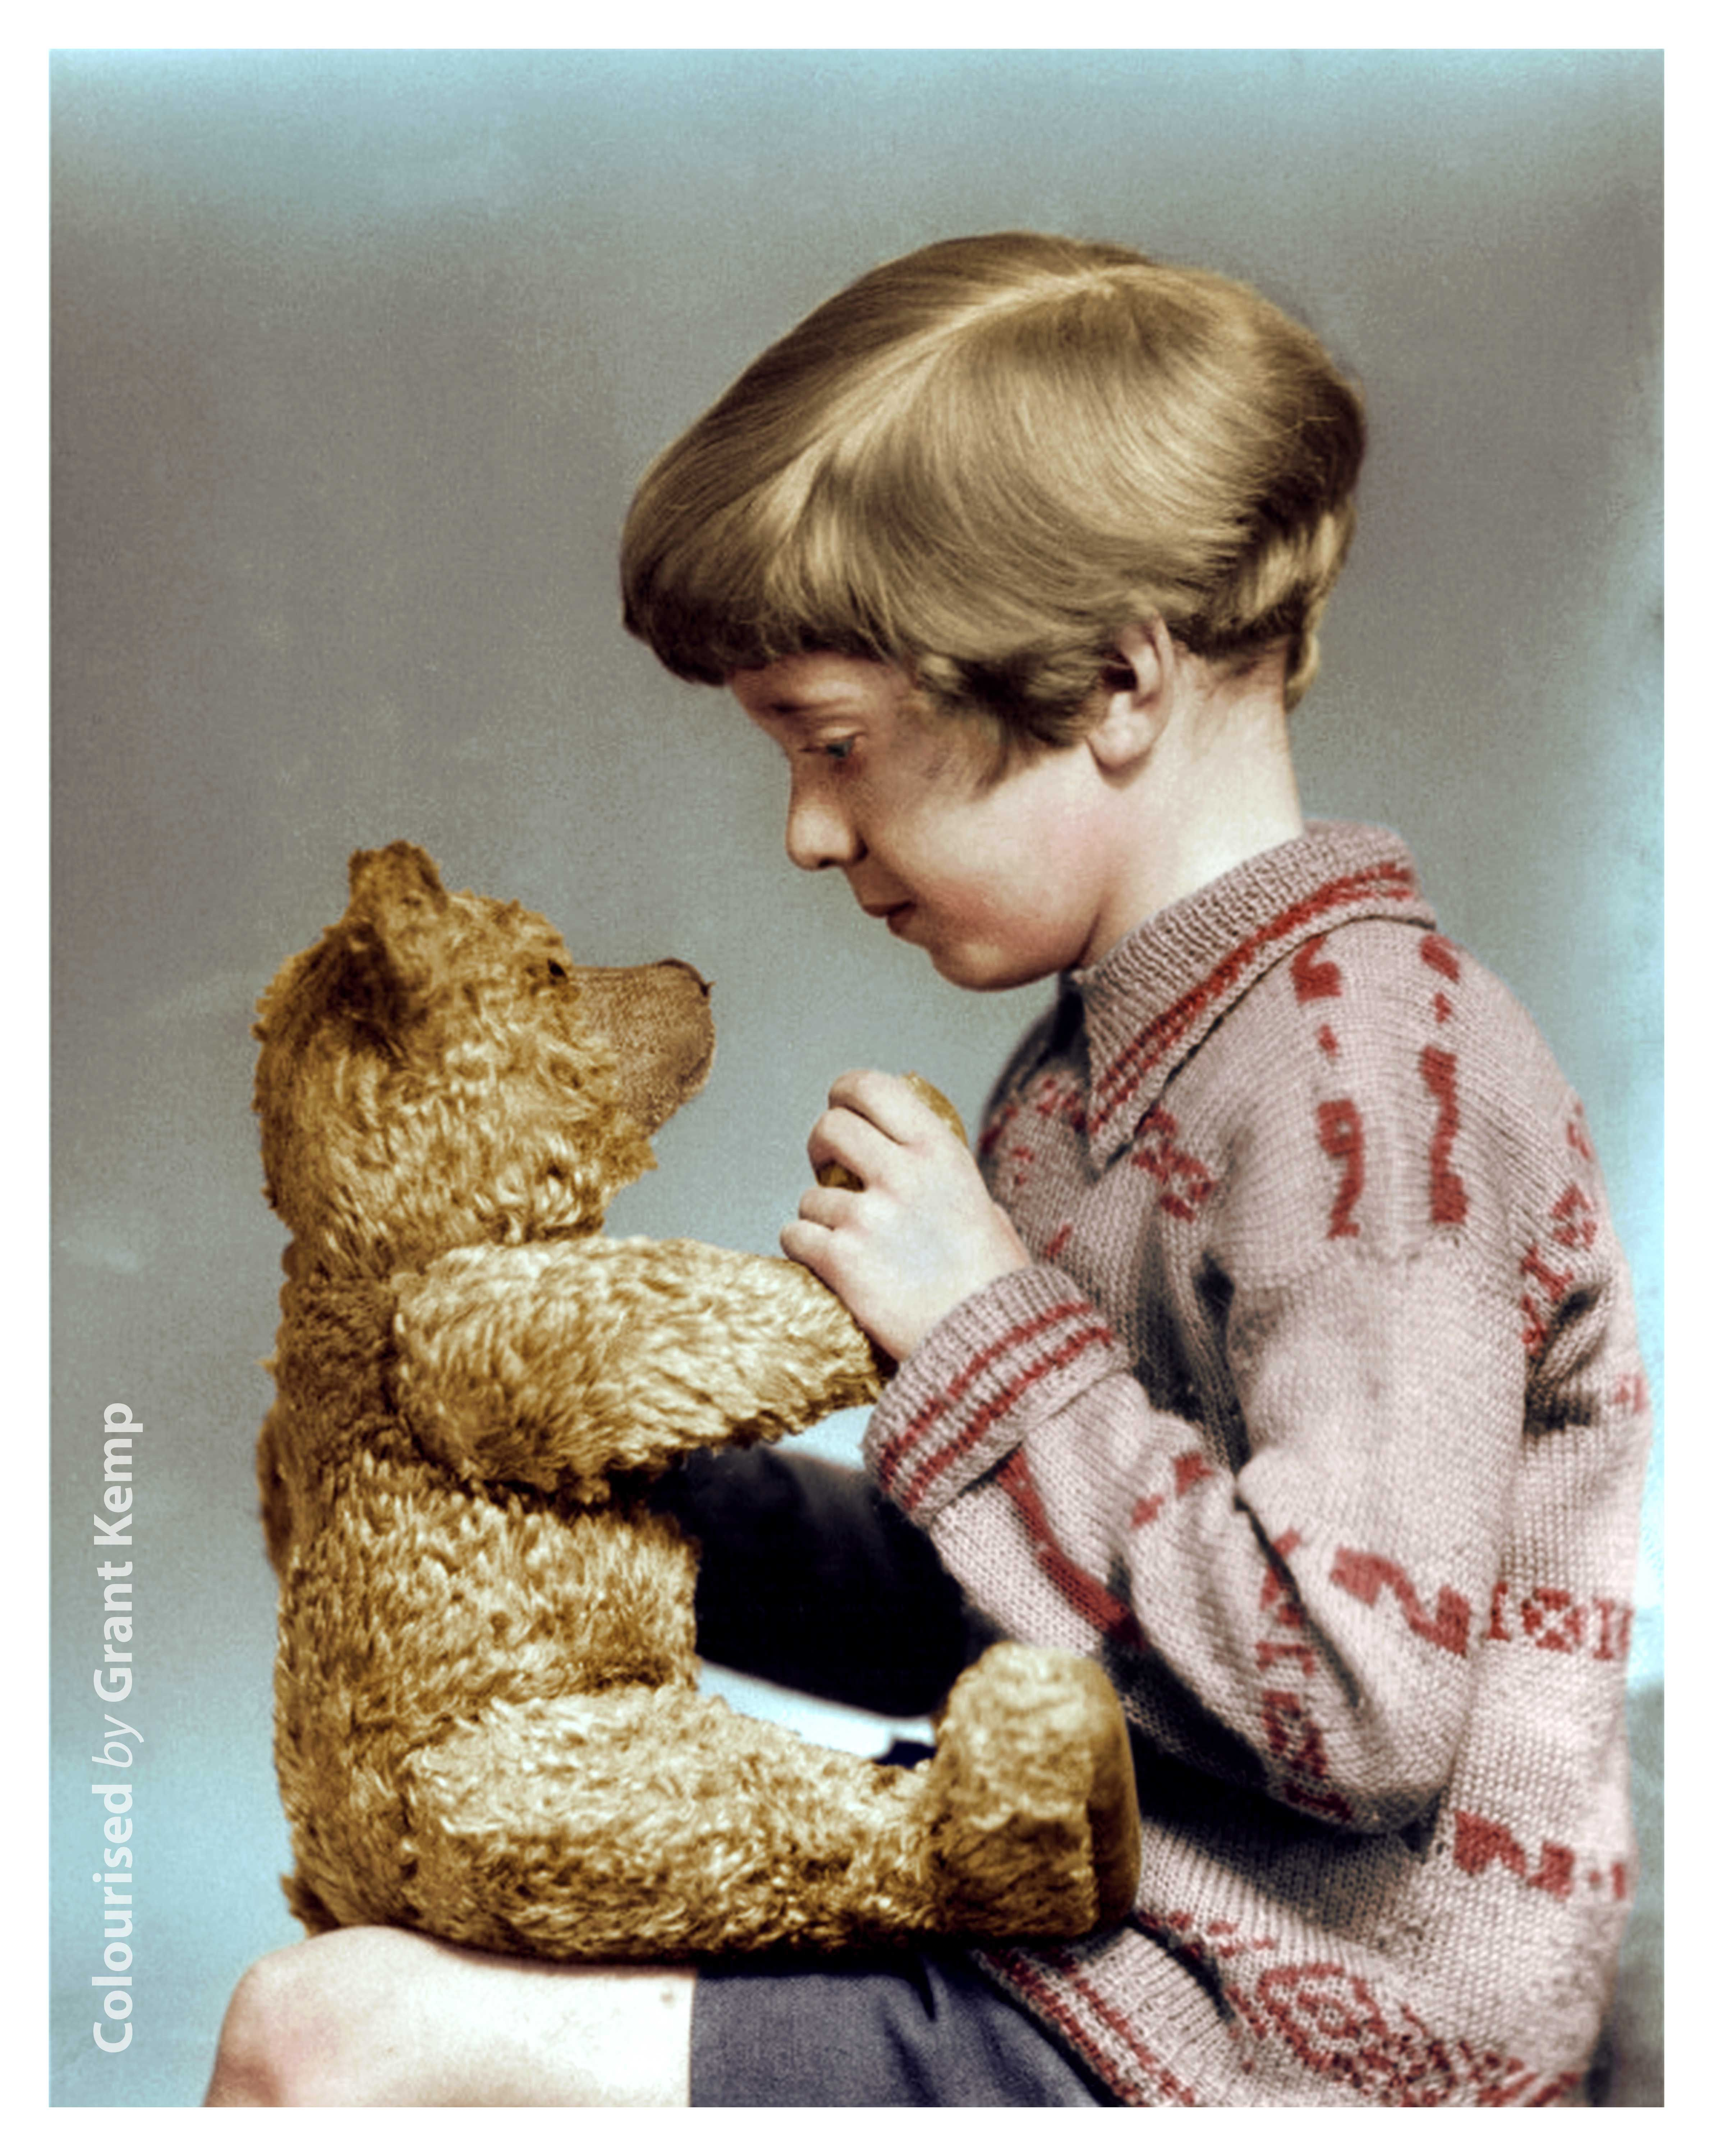 Christopher Robin Milne Was Born At 11 Mallord Street Chelsea